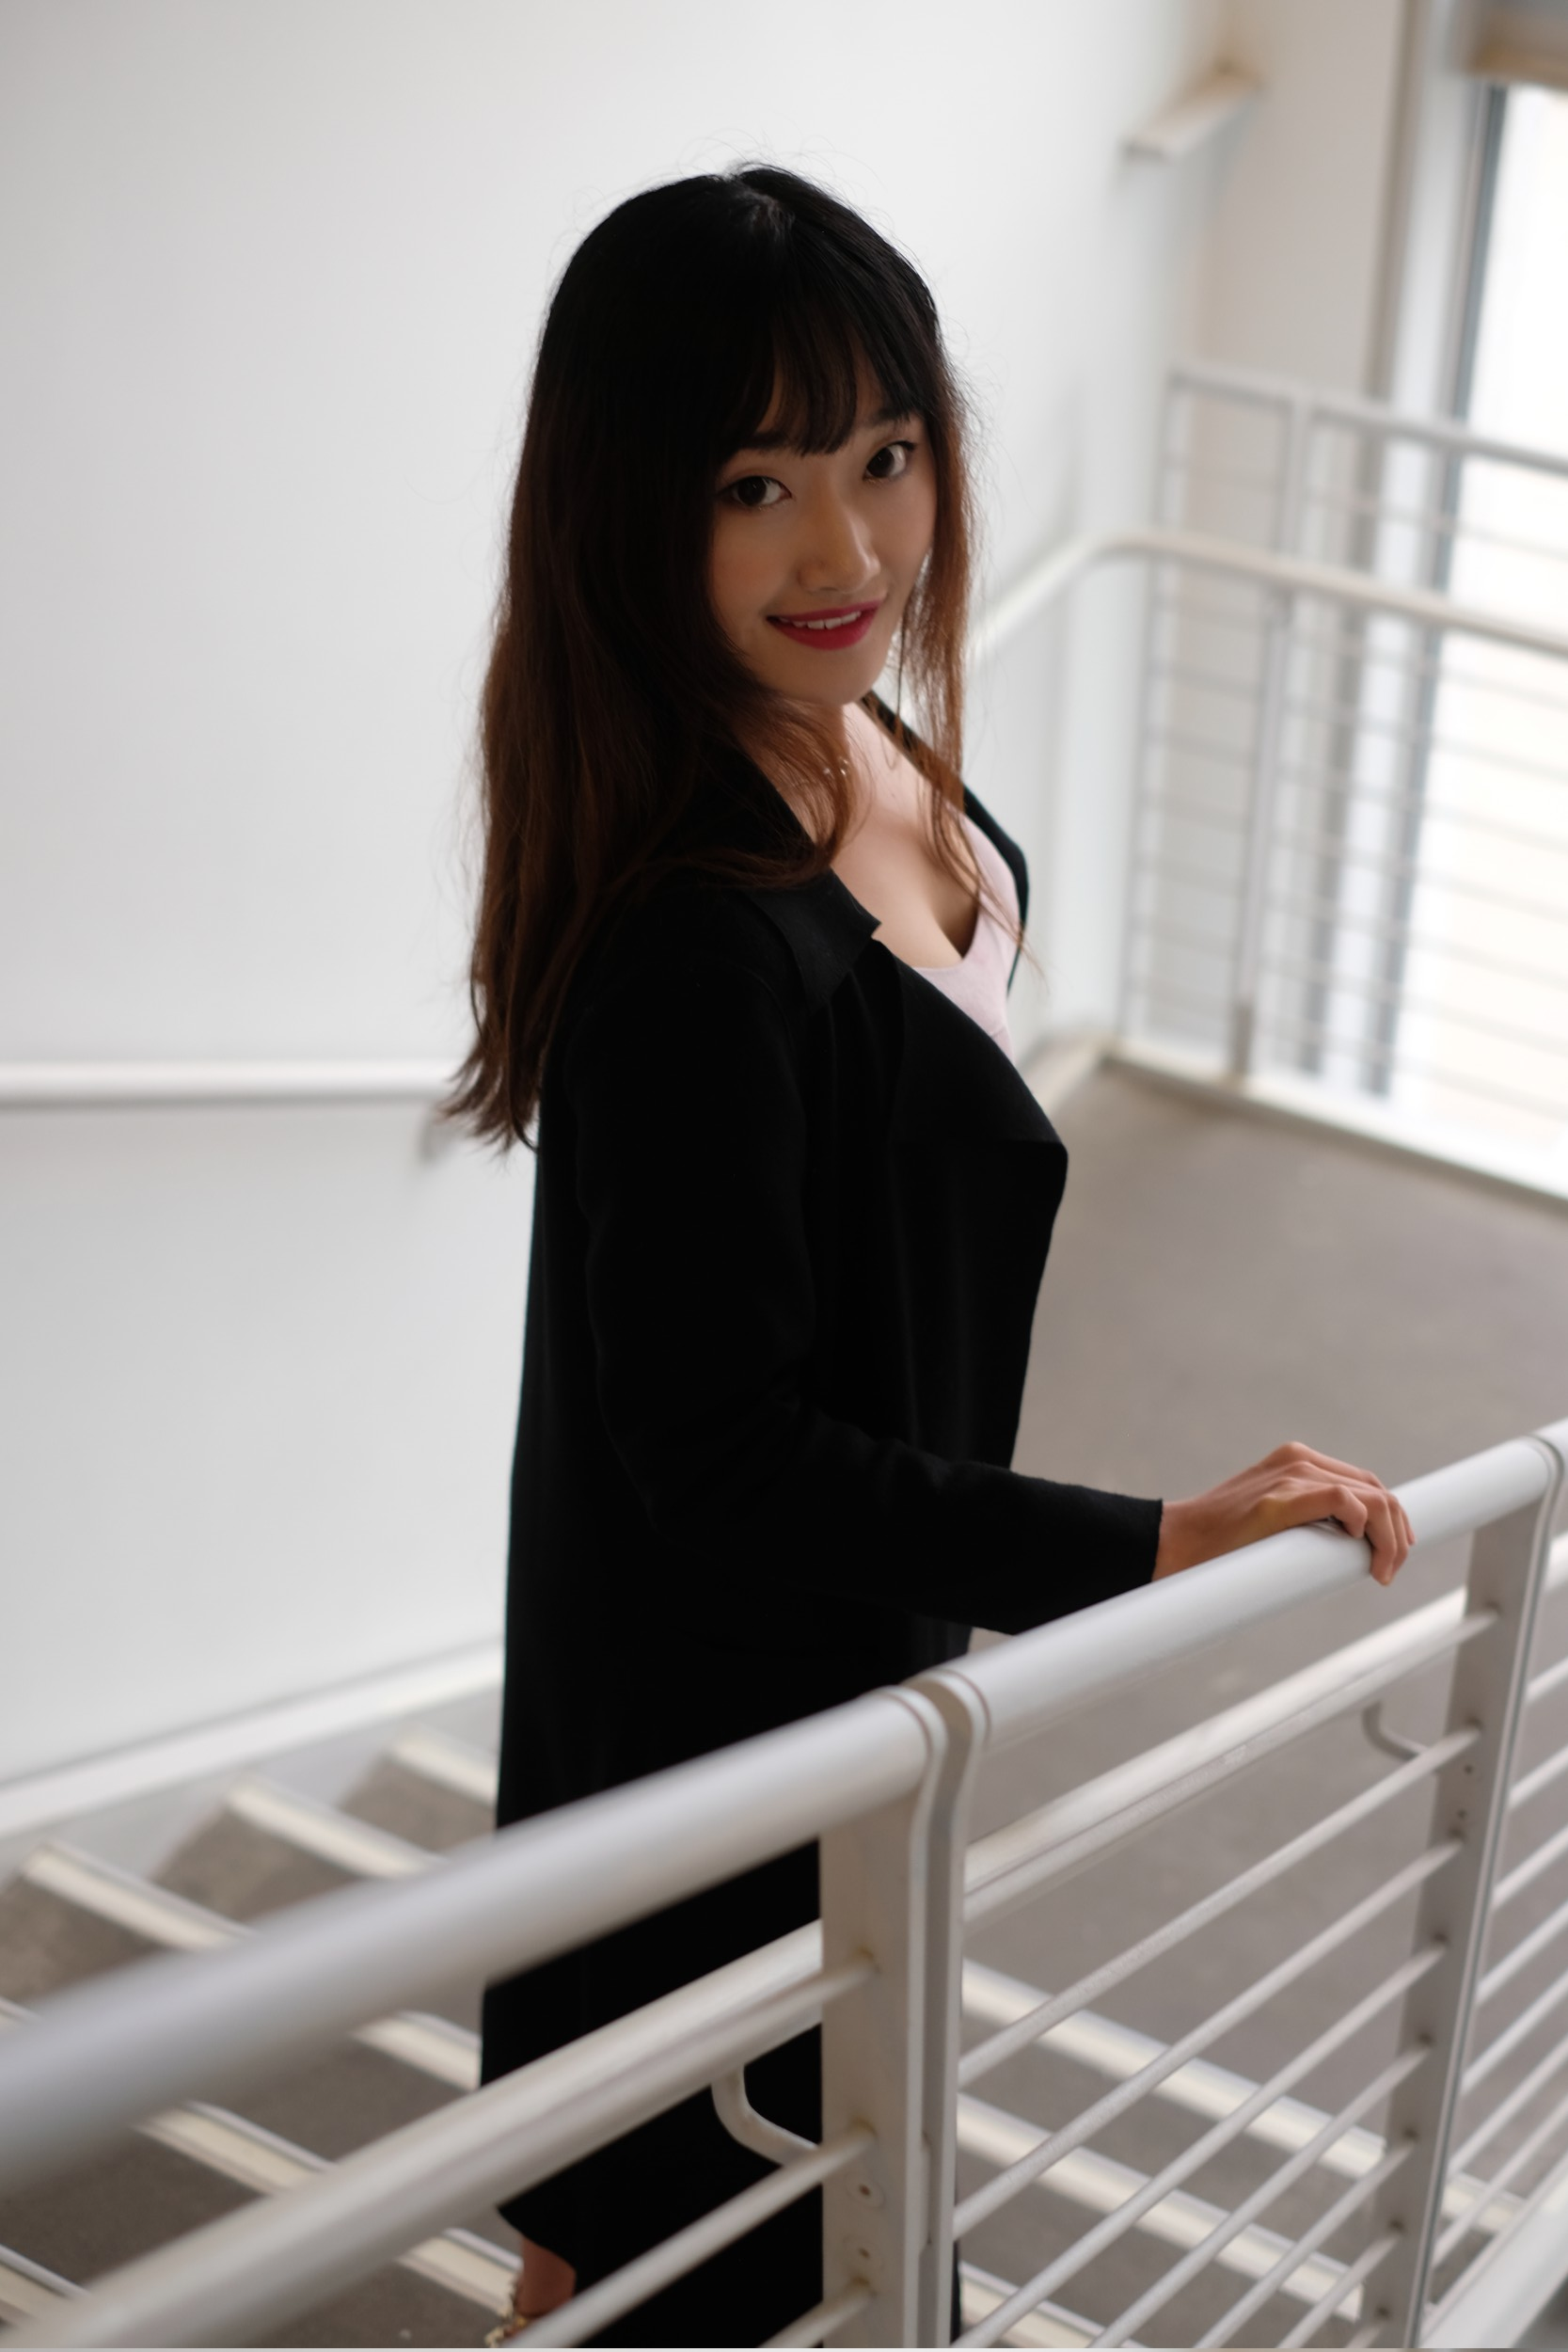 Chinese girl in black coat in stairwell